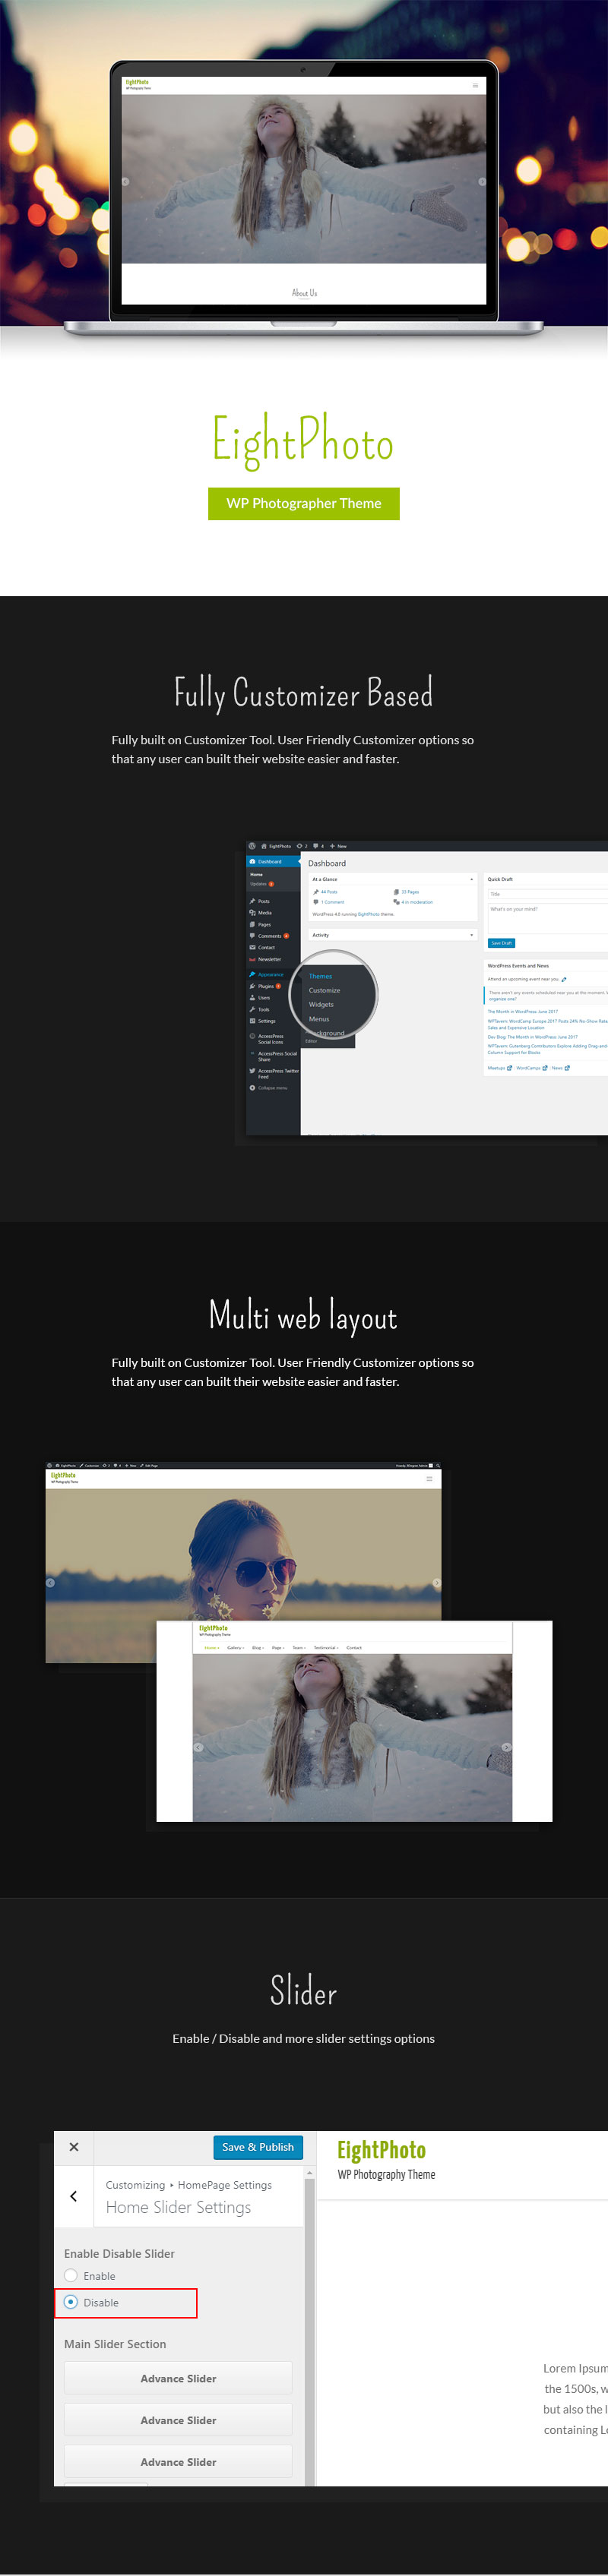 Free Photography WordPress Theme Features